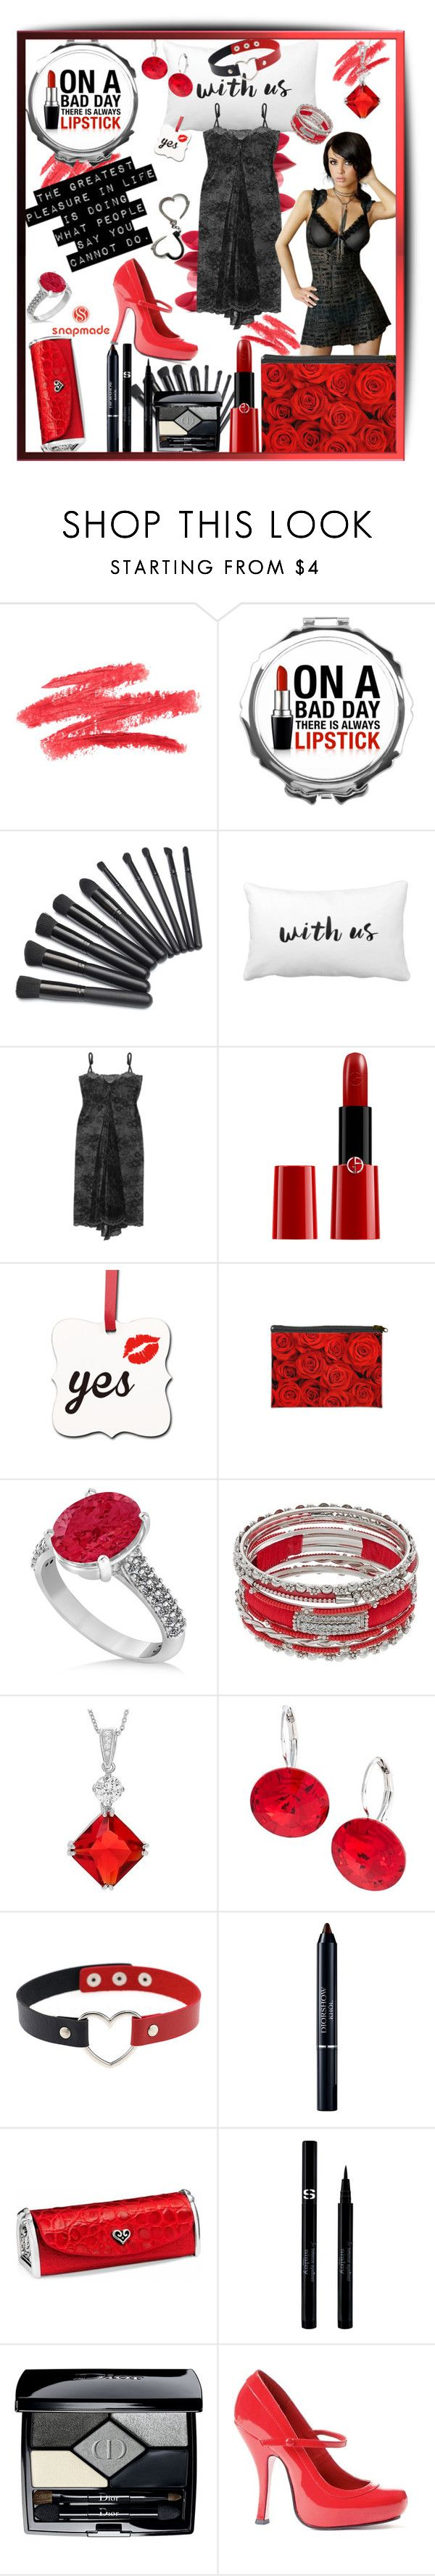 """""""Snapmade"""" by tempestaartica ❤ liked on Polyvore featuring Rossetto, Cosabella, Giorgio Armani, Allurez, Journee Collection, L. Erickson, Christian Dior, Brighton, Sisley and Buy Seasons"""